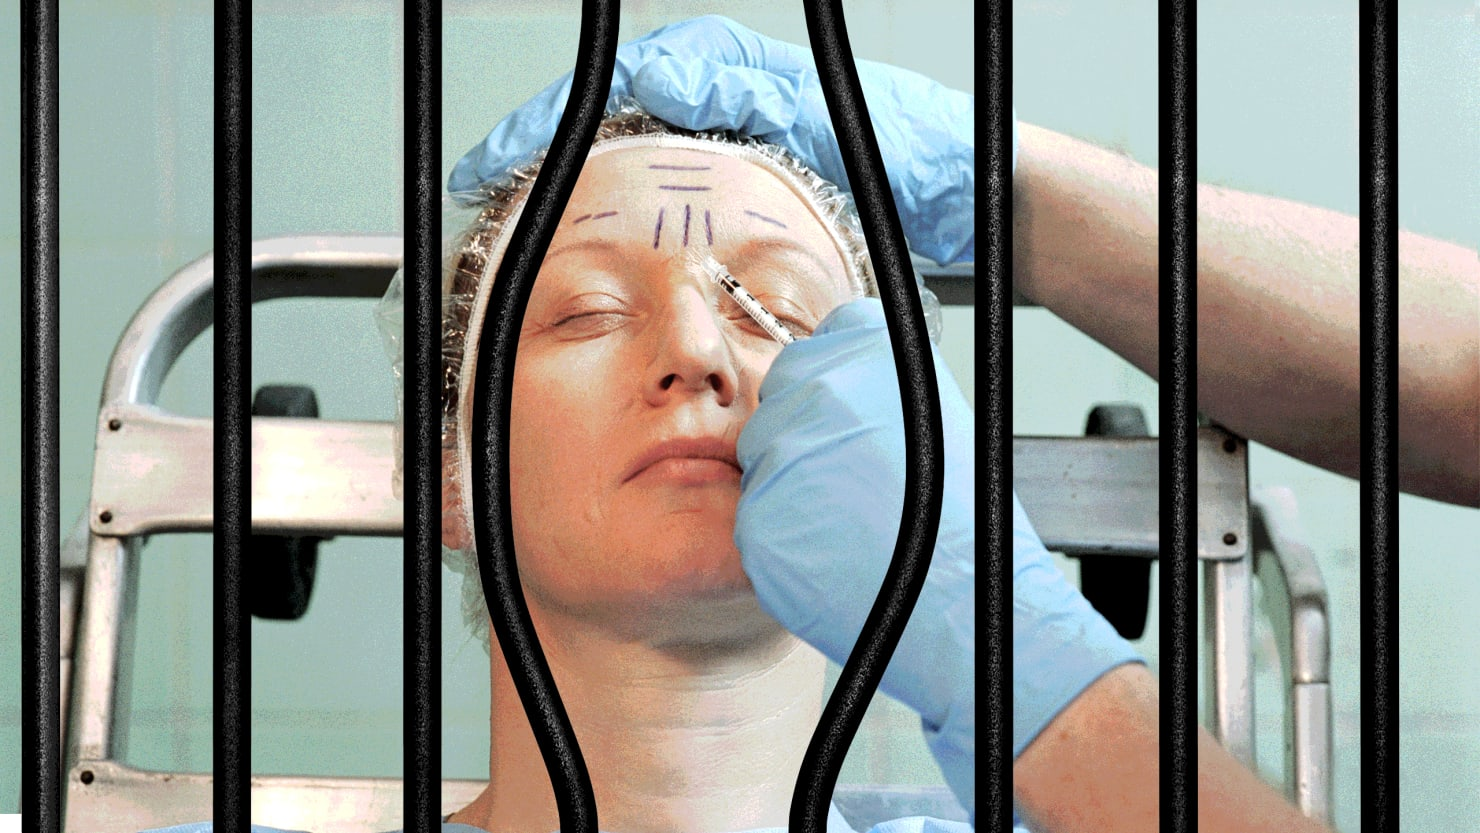 Doctor Goes on the Lam After Saying Plastic Surgeries Were Emergency Procedures